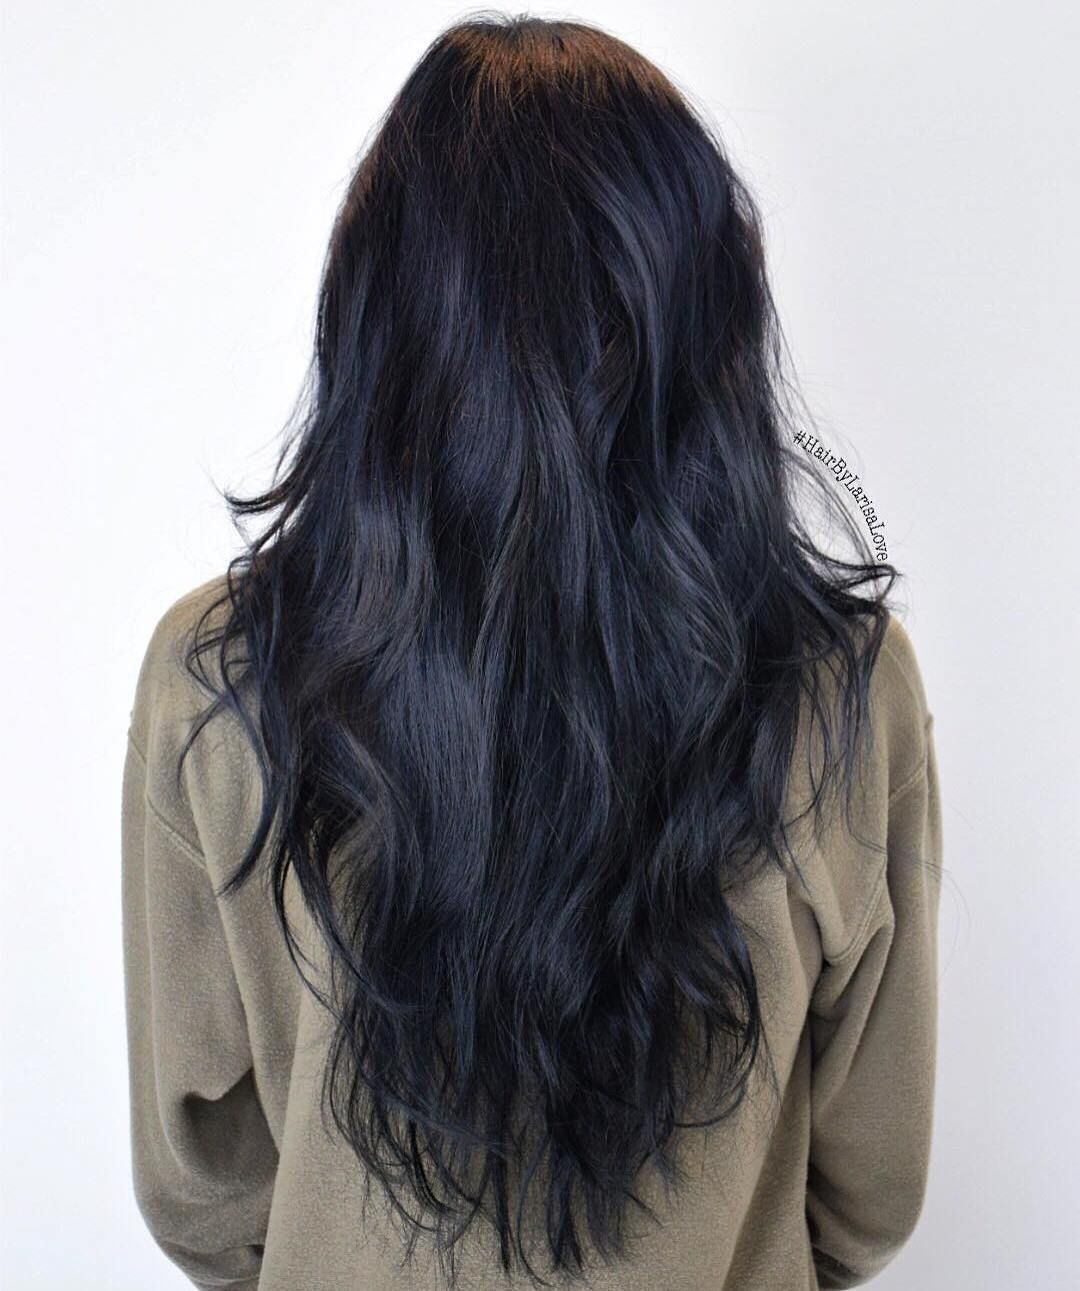 Long layered black hairstyle blackhairstyles black hairstyles in